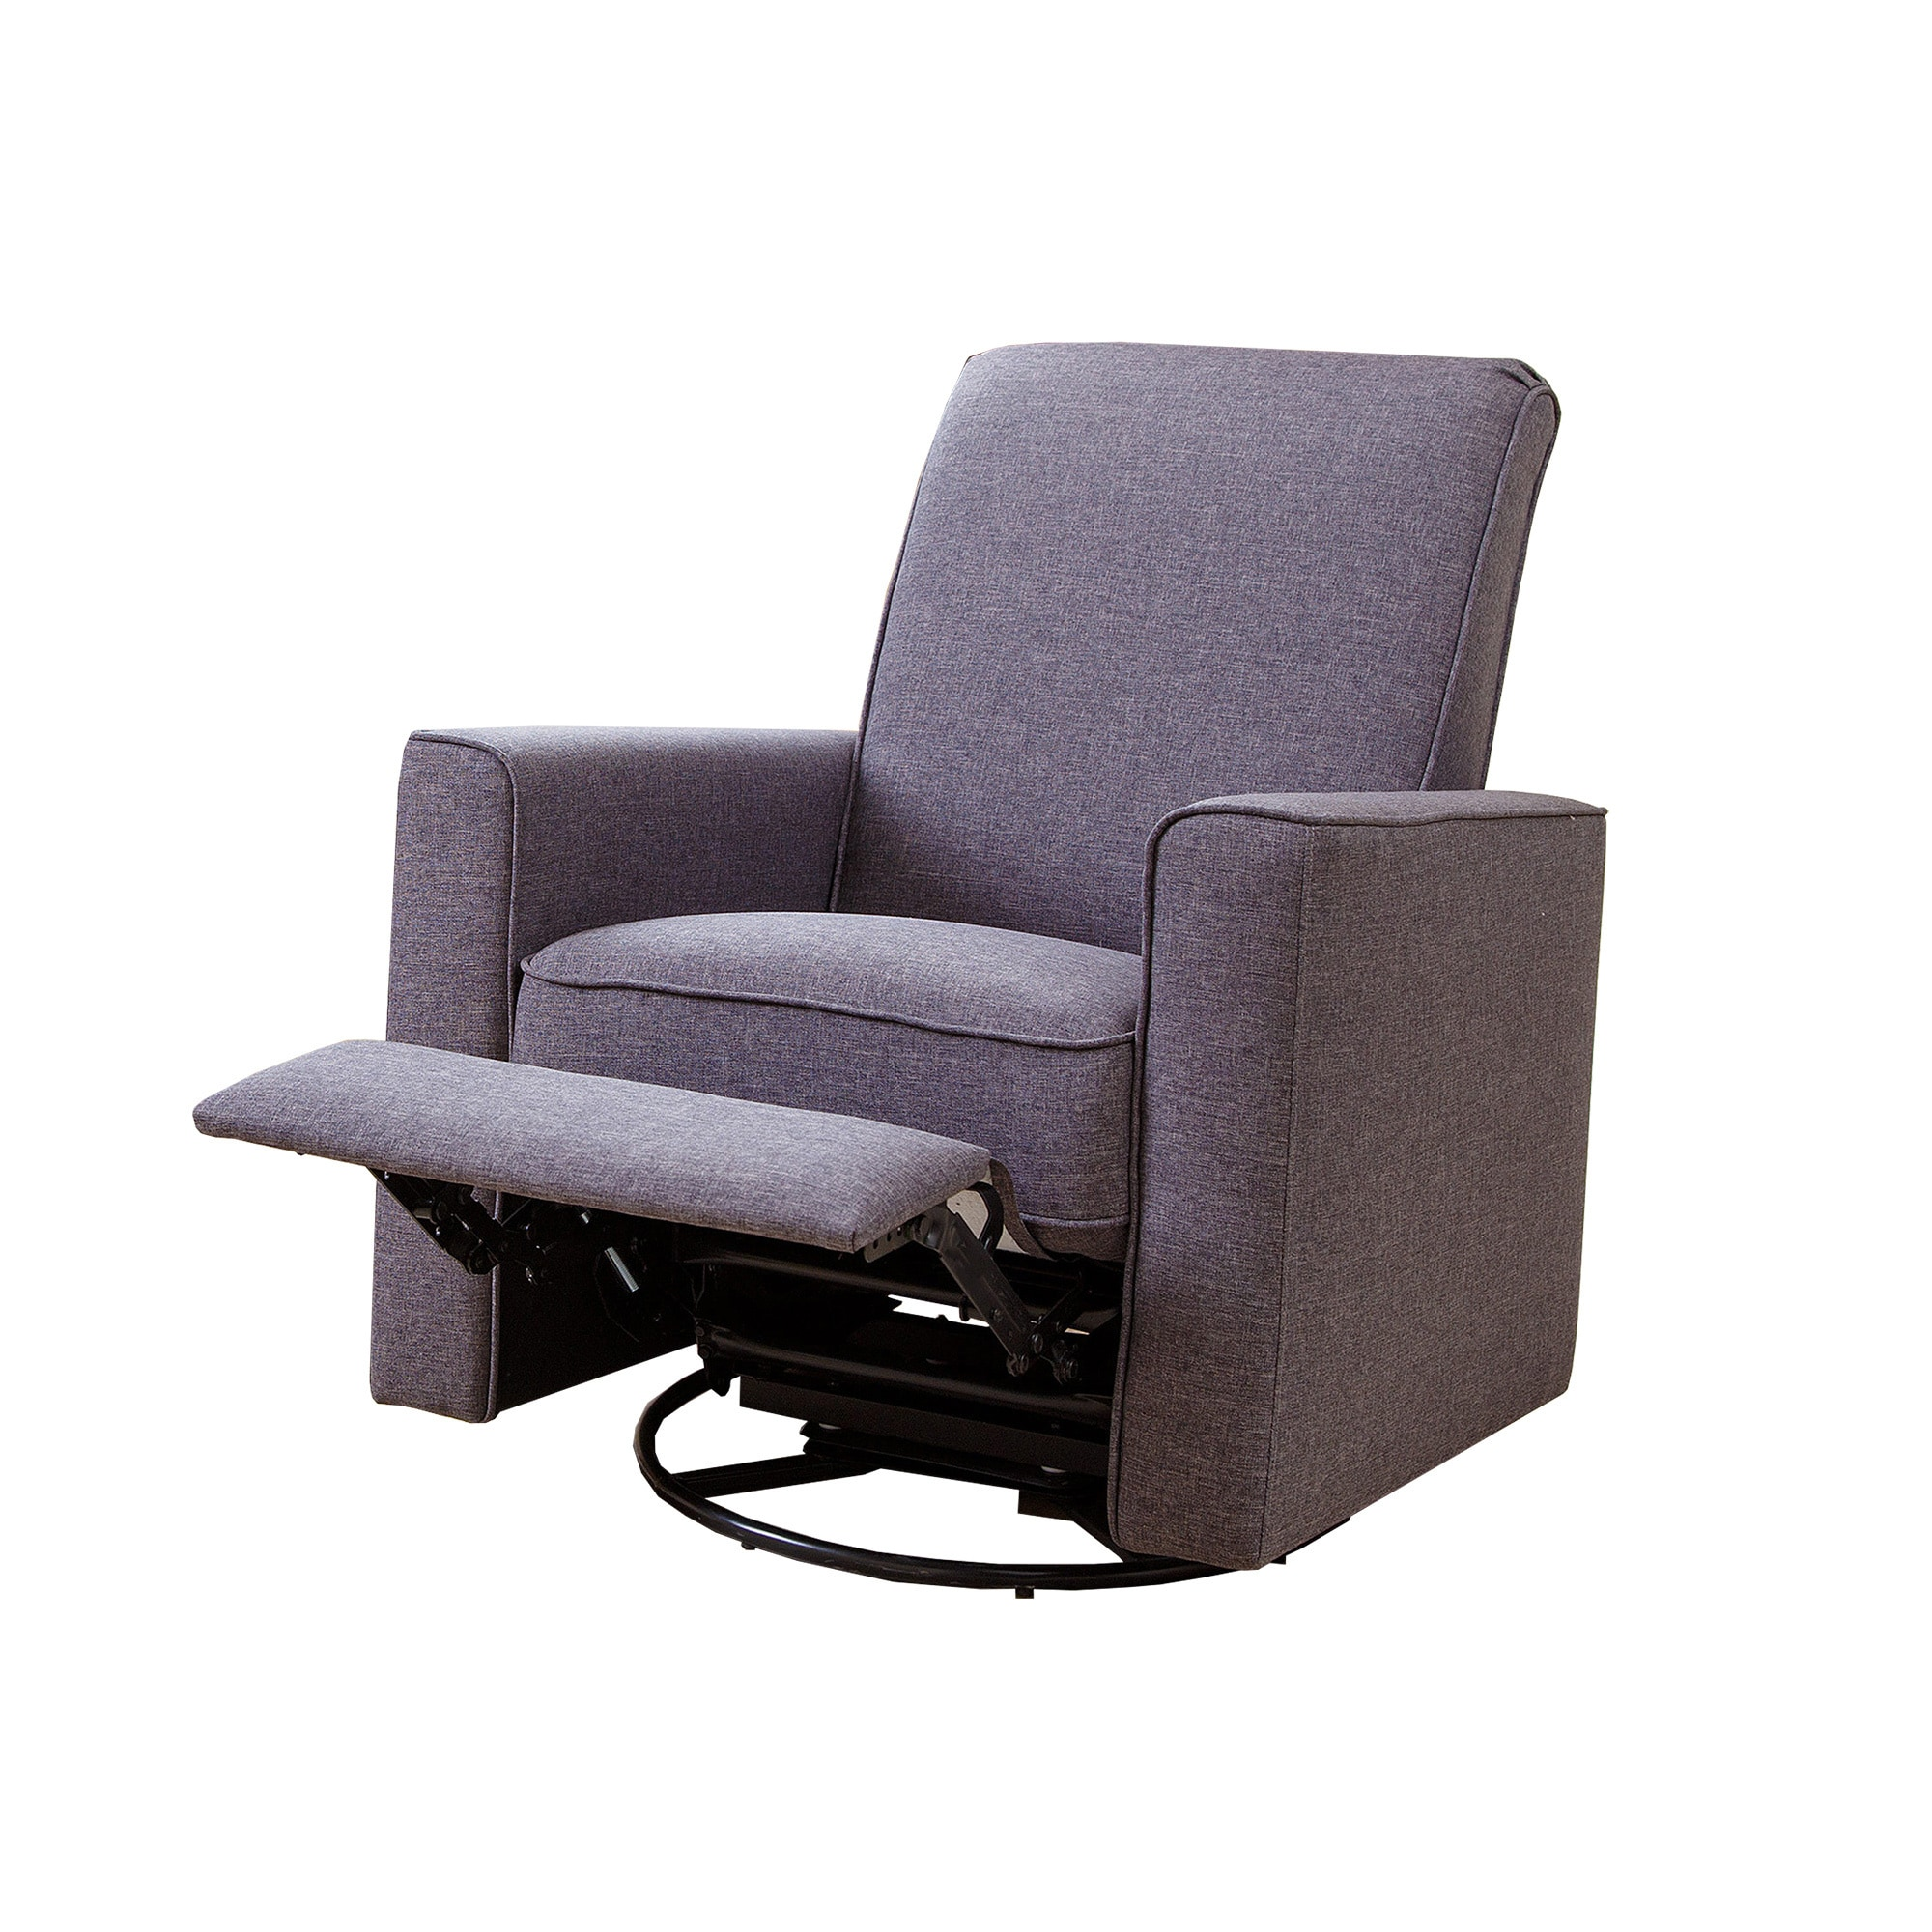 Shop Abbyson H&ton Grey Nursery Swivel Glider Recliner Chair - On Sale - Free Shipping Today - Overstock.com - 10416471  sc 1 st  Overstock.com & Shop Abbyson Hampton Grey Nursery Swivel Glider Recliner Chair - On ...